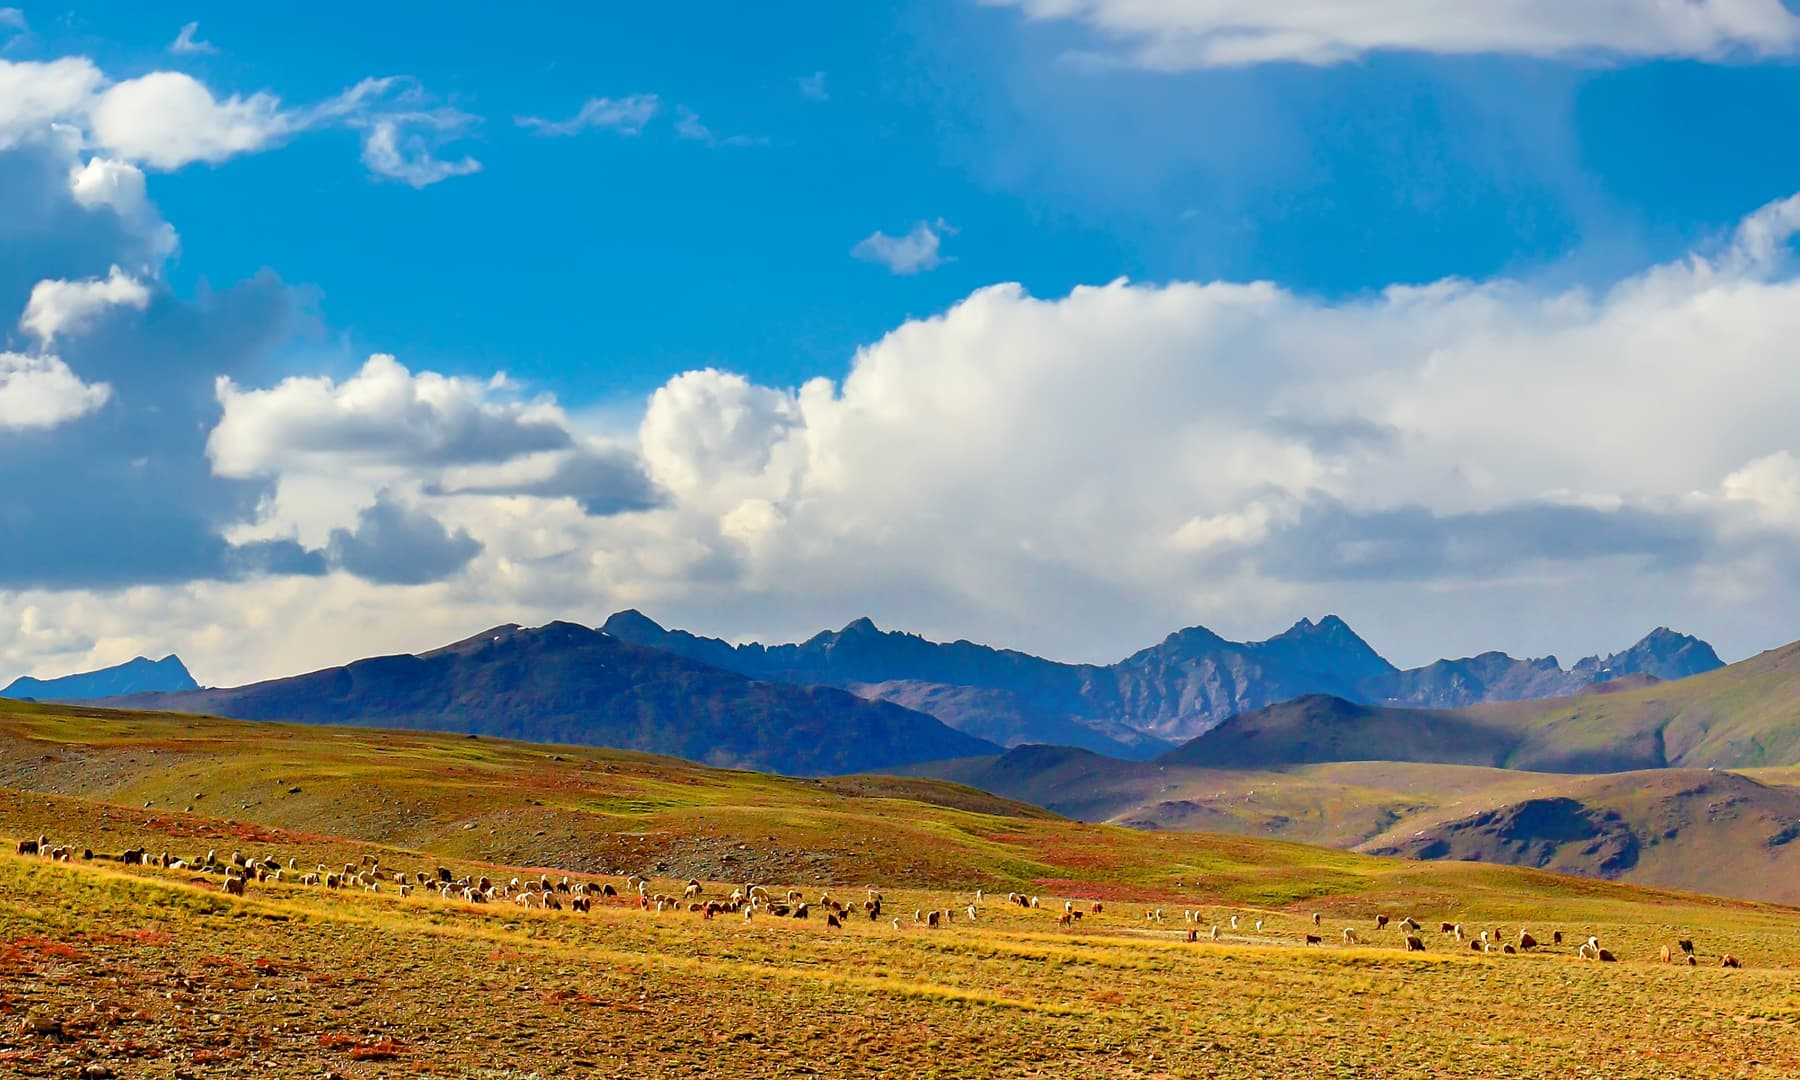 The plains of Deosai in the distance.